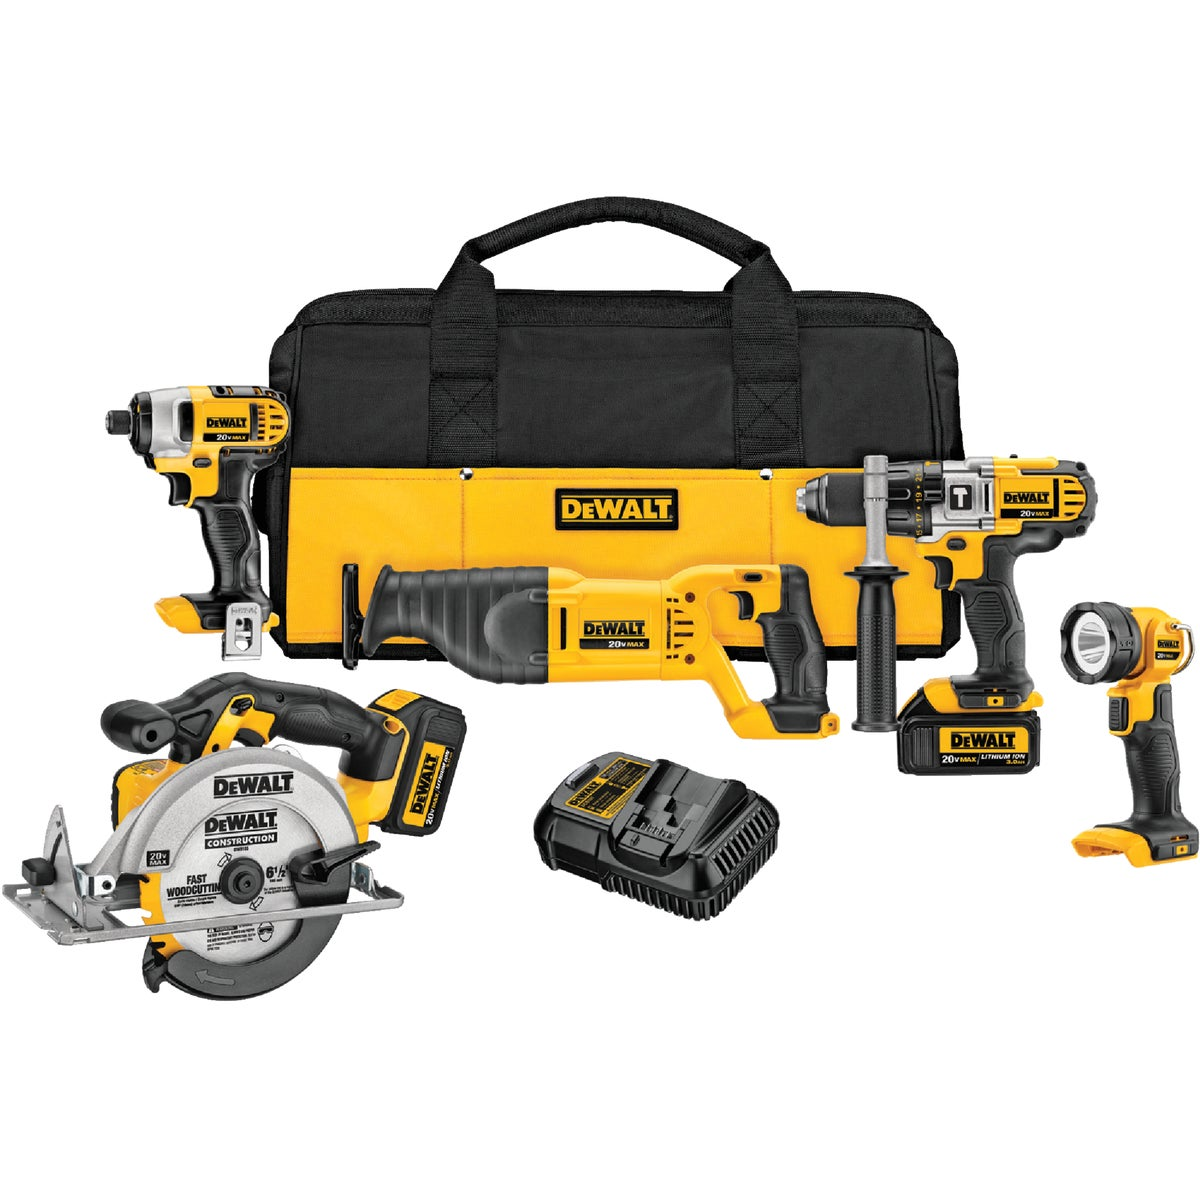 20V 5-TOOL KIT - DCK590L2 by DeWalt